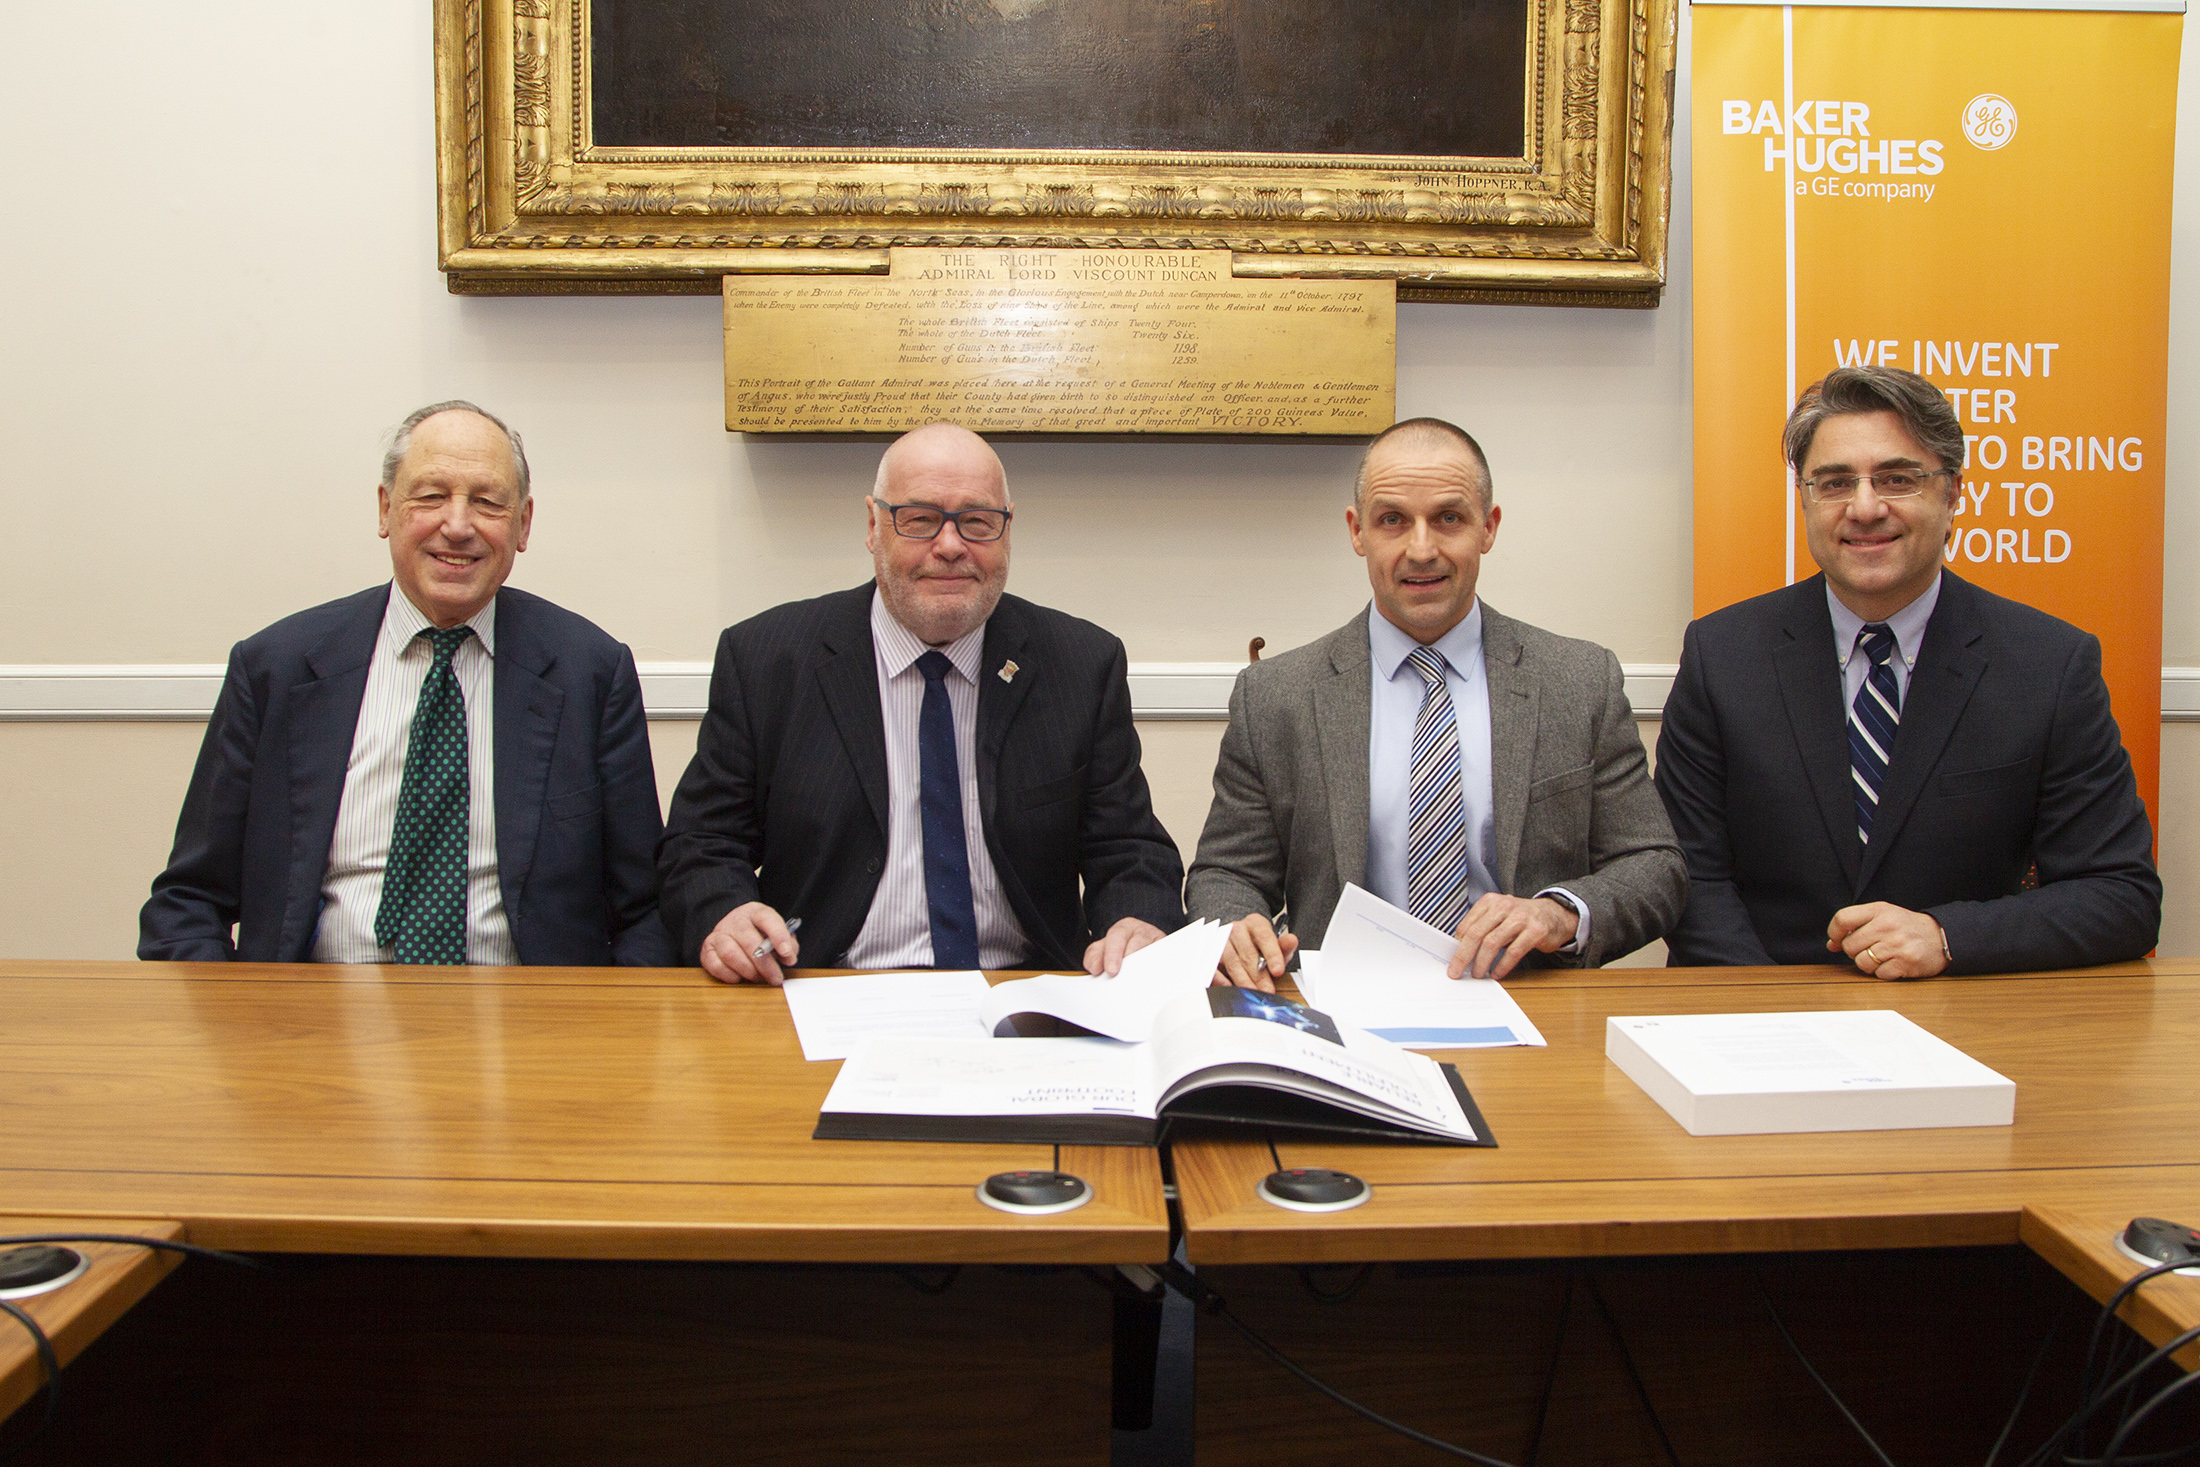 Deputy Leader of Angus Council Angus Macmillan Douglas,  Council leader Councillor David Fairweather, Graham Gillies, Vice President, Subsea Production Systems, BHGE and Lorenzo Romagnoli Global Supply Chain Director at Baker Hughes at the signing of the Memorandum of Understanding